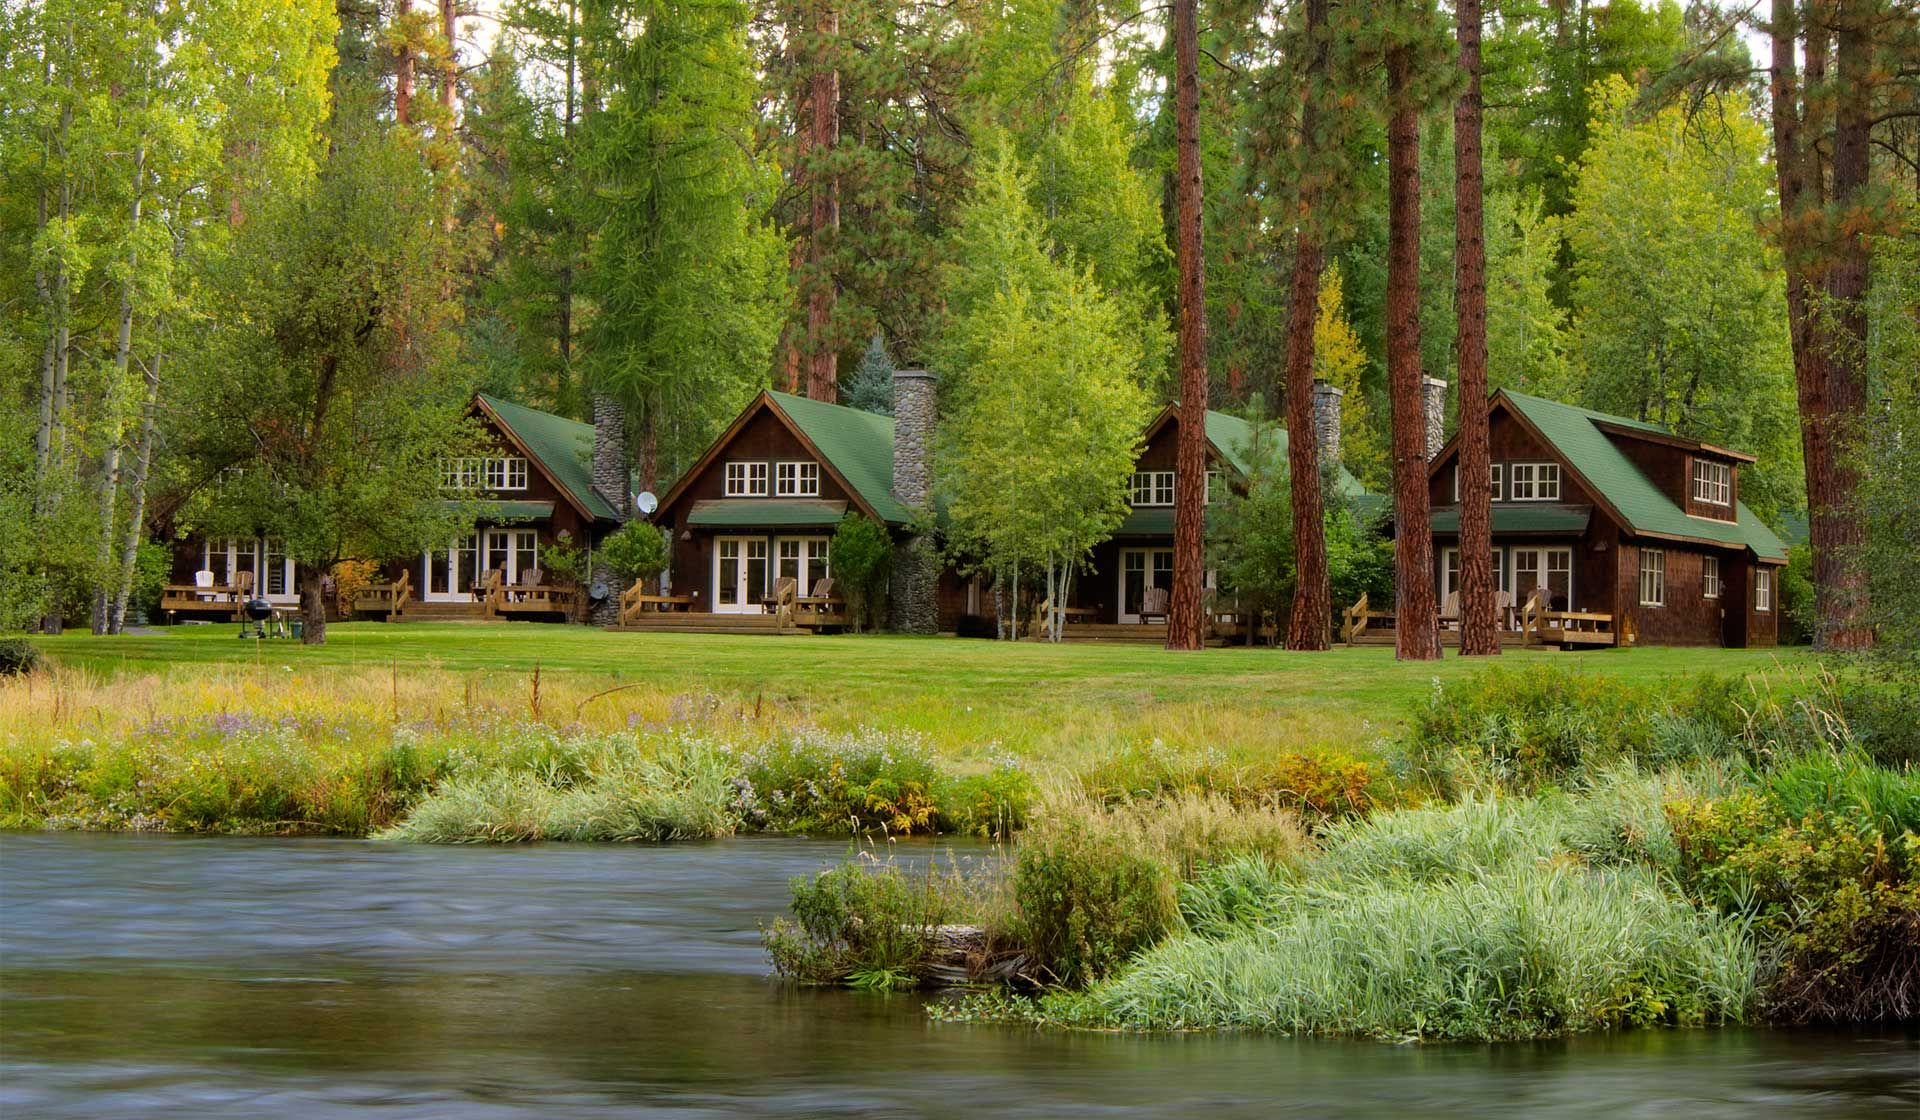 More rustic luxury cabins surrounded by lush forest